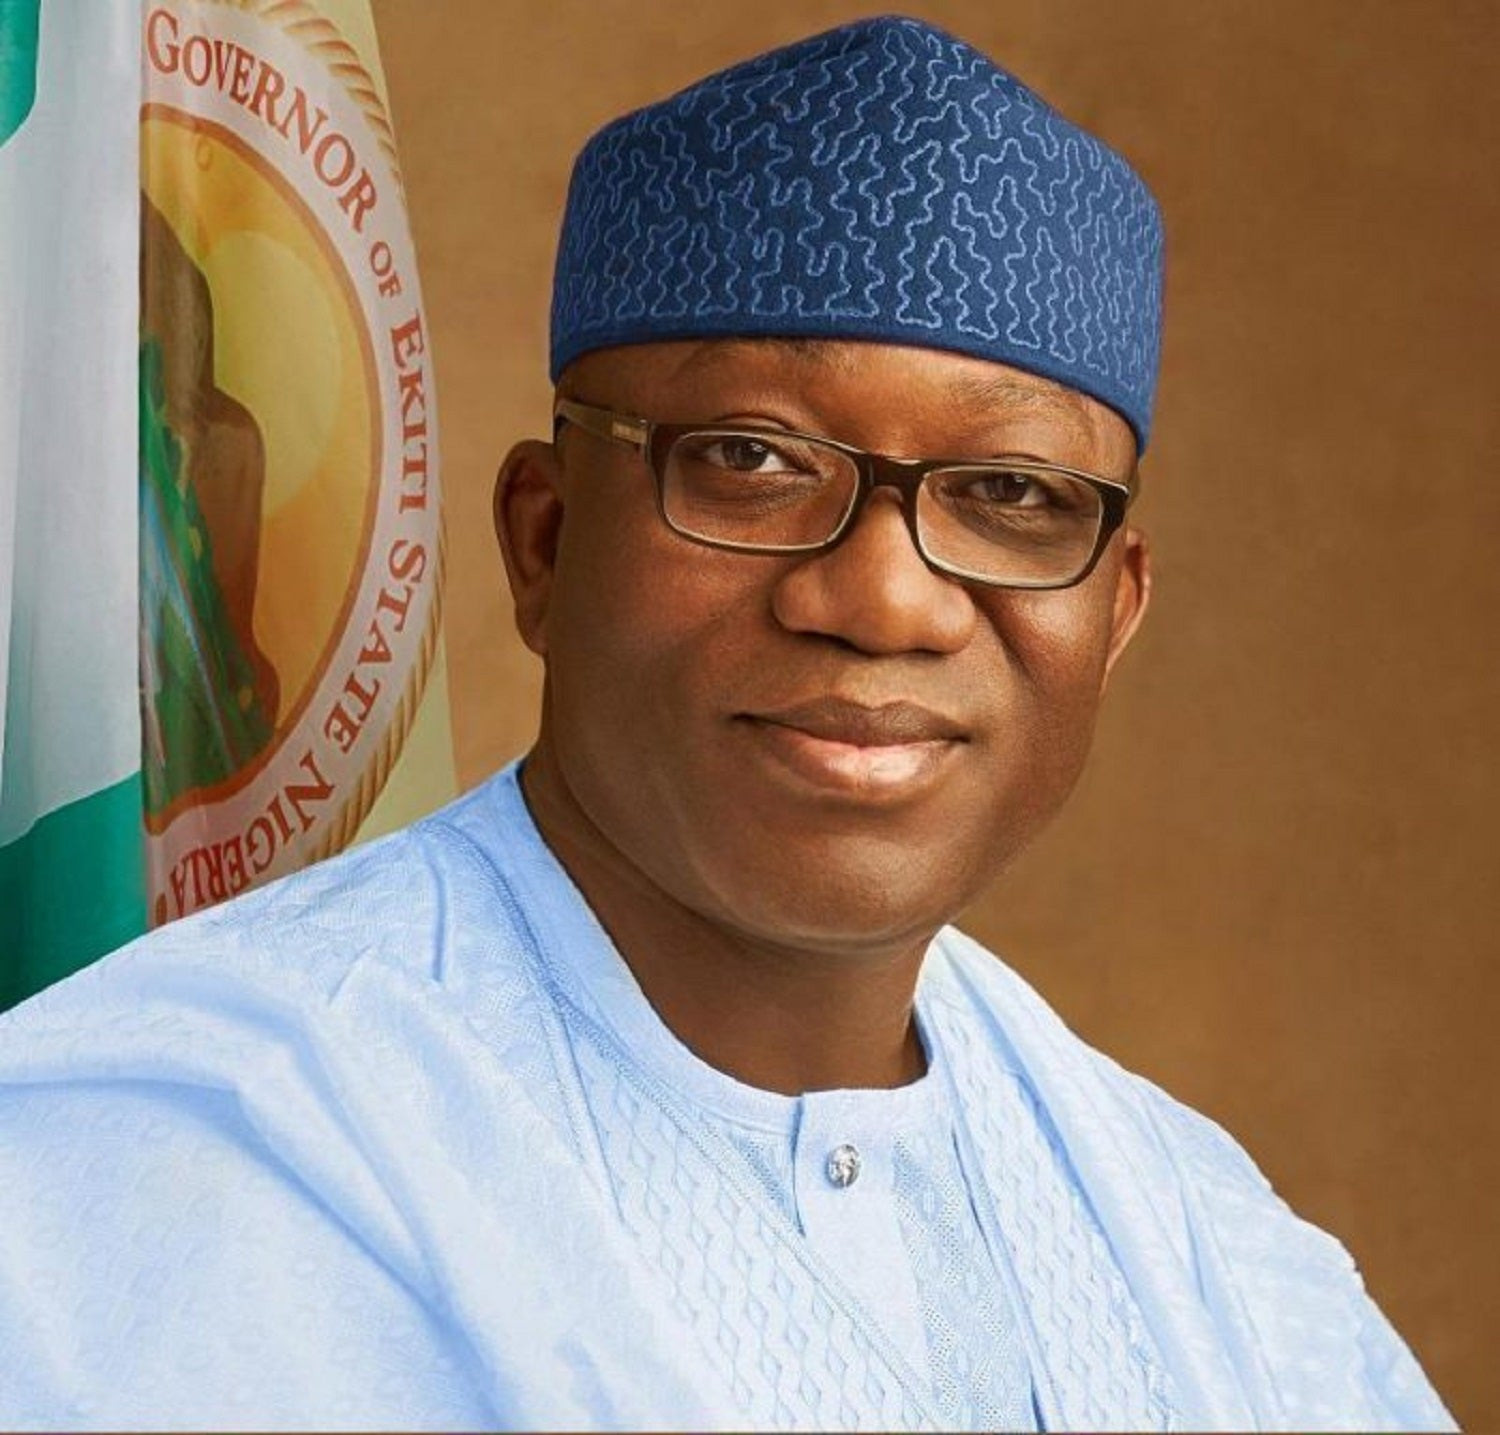 Coronavirus: Ekiti government orders closure of schools, bans public gathering of more than 20 people